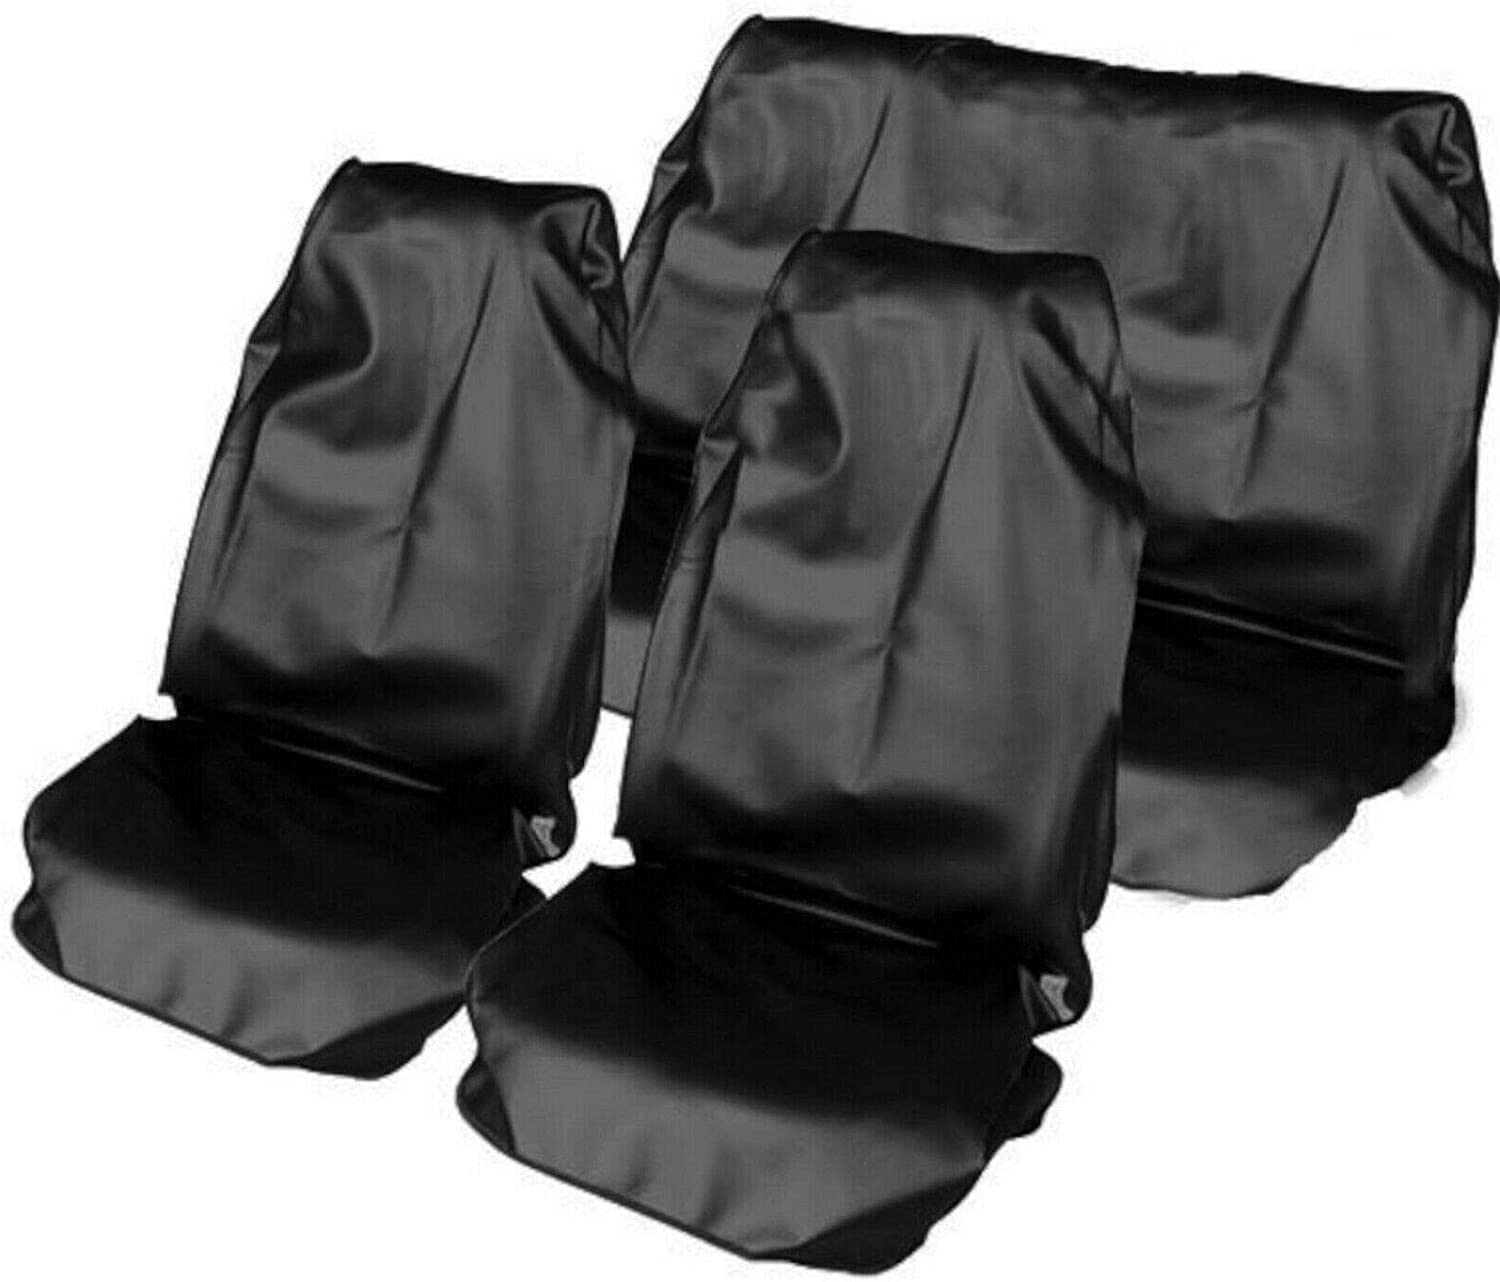 AB1 flexzon Black Heavy Duty Waterproof Full Set Car Seat Covers Protectors Universal Dog